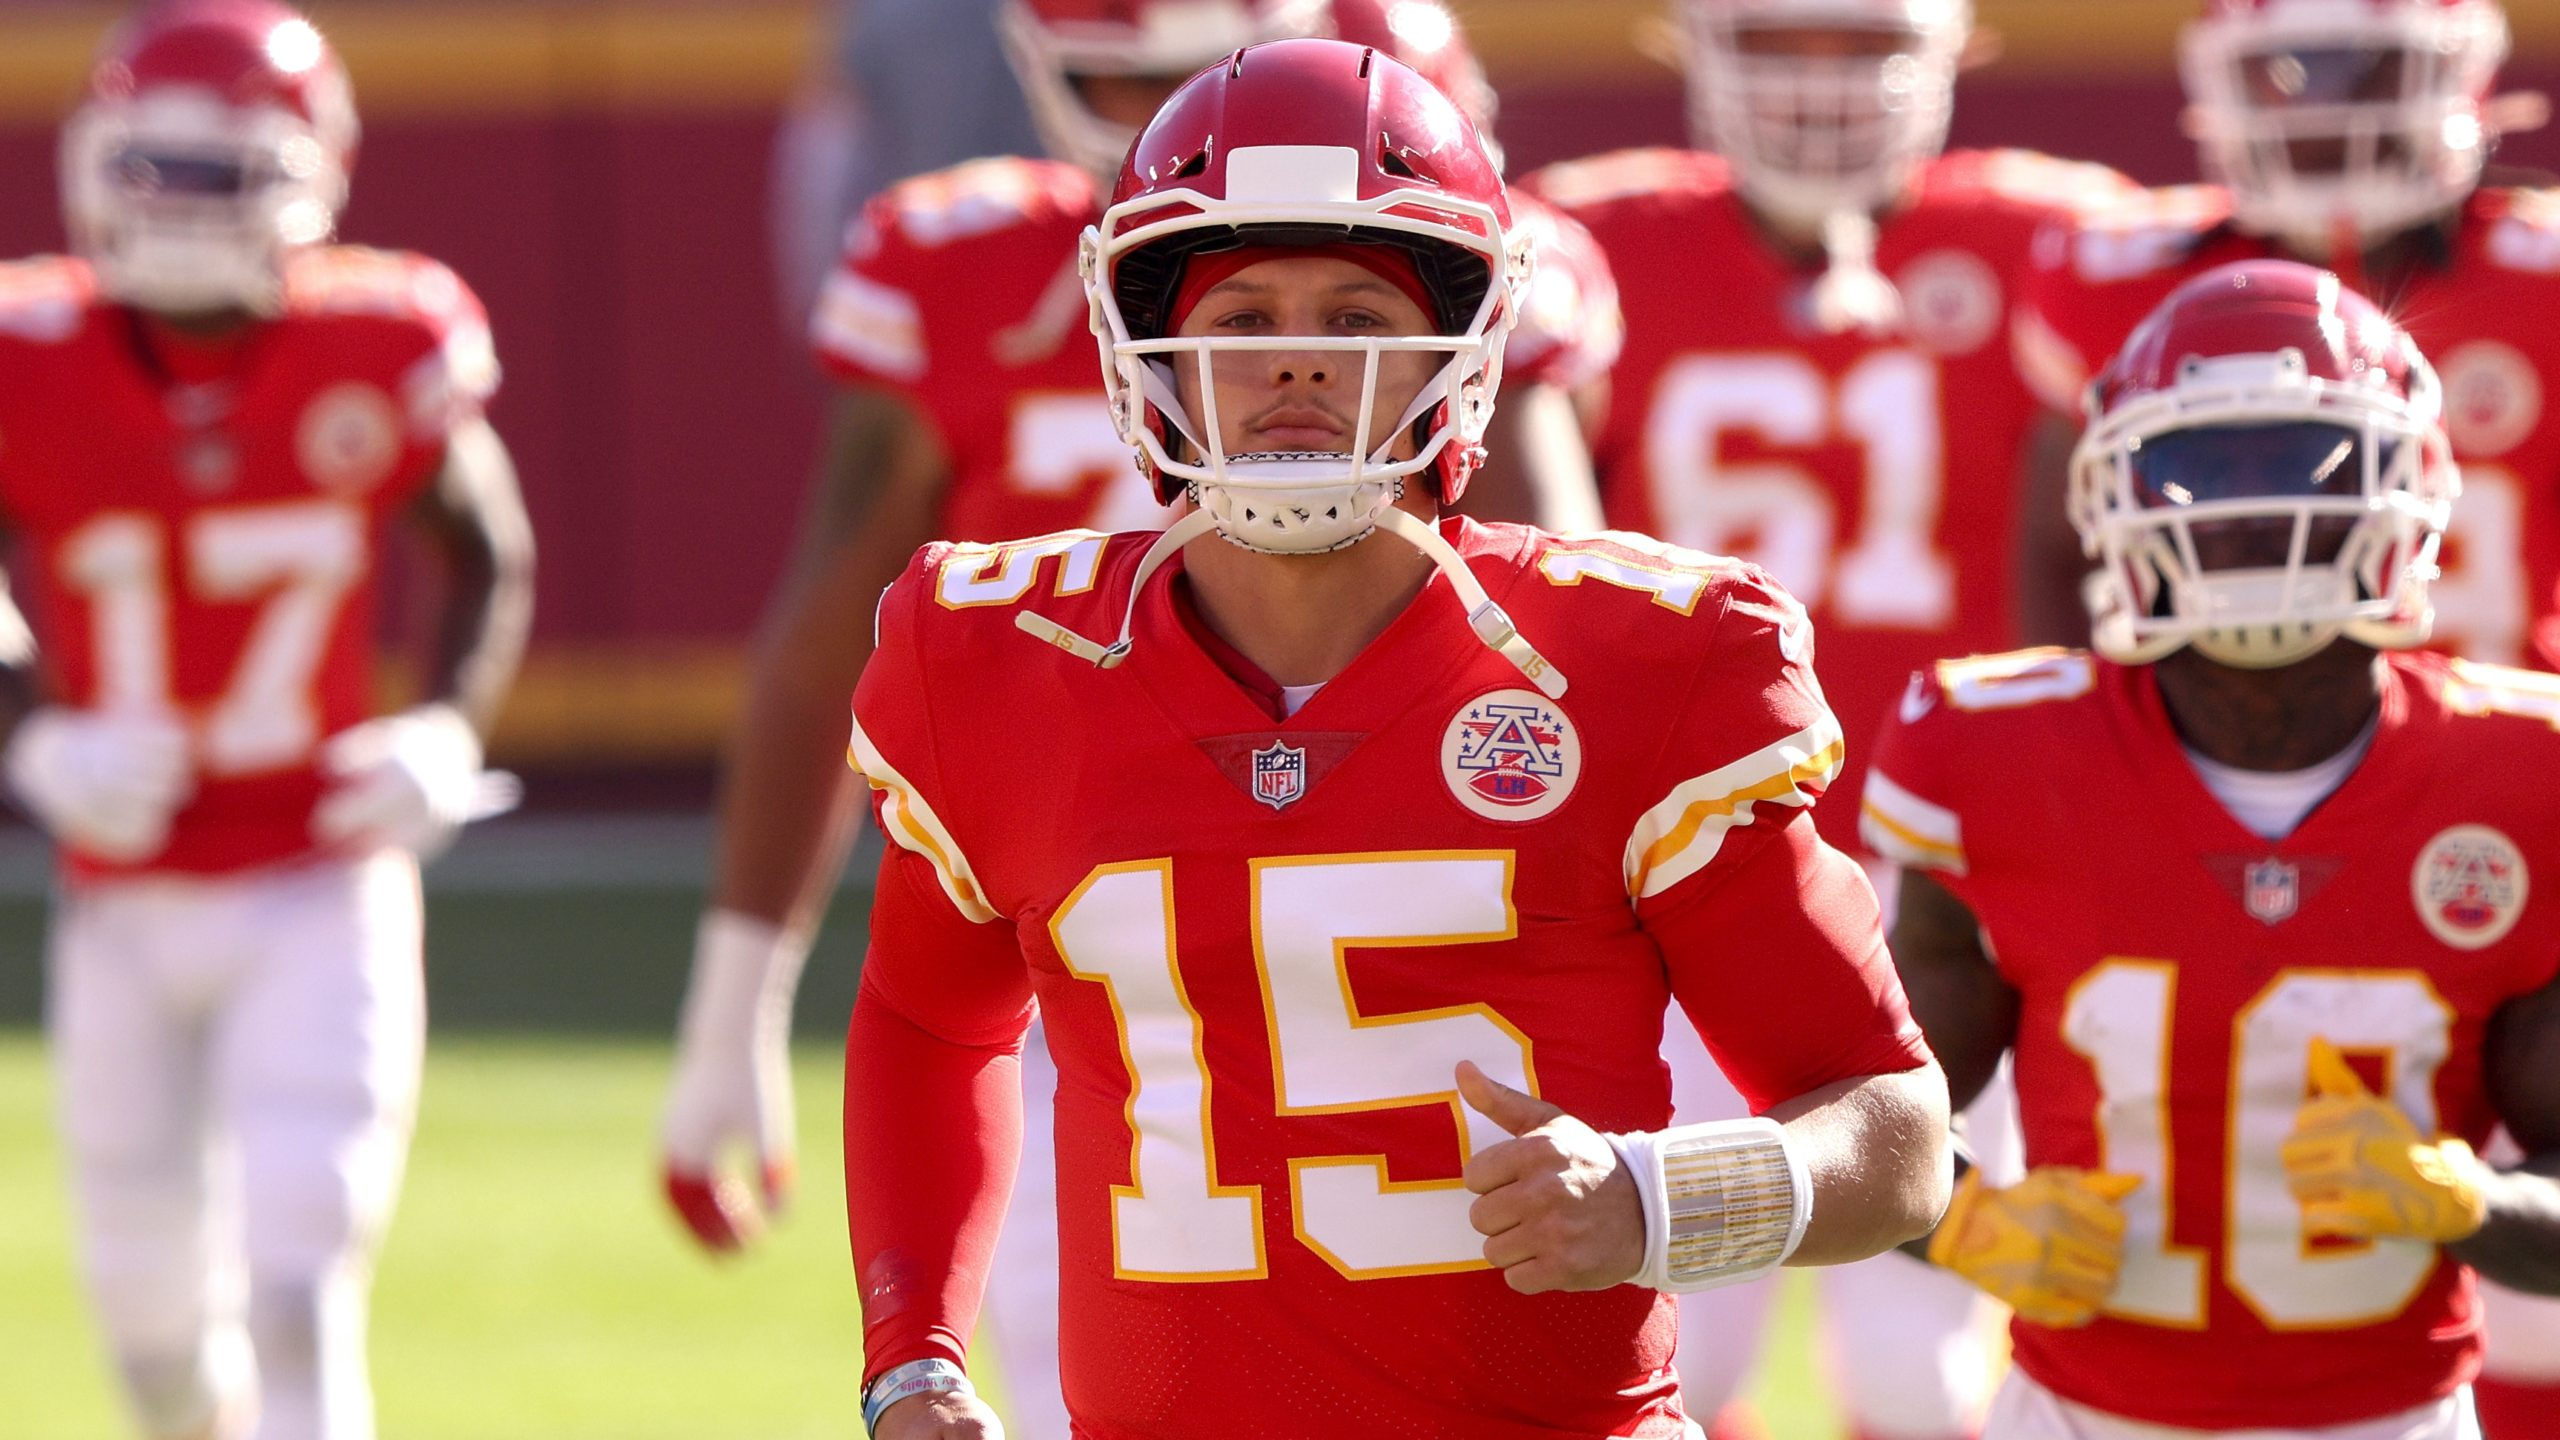 Chiefs-Browns Promo: Bet $5, Win $125 on the Chiefs Moneyline! article feature image